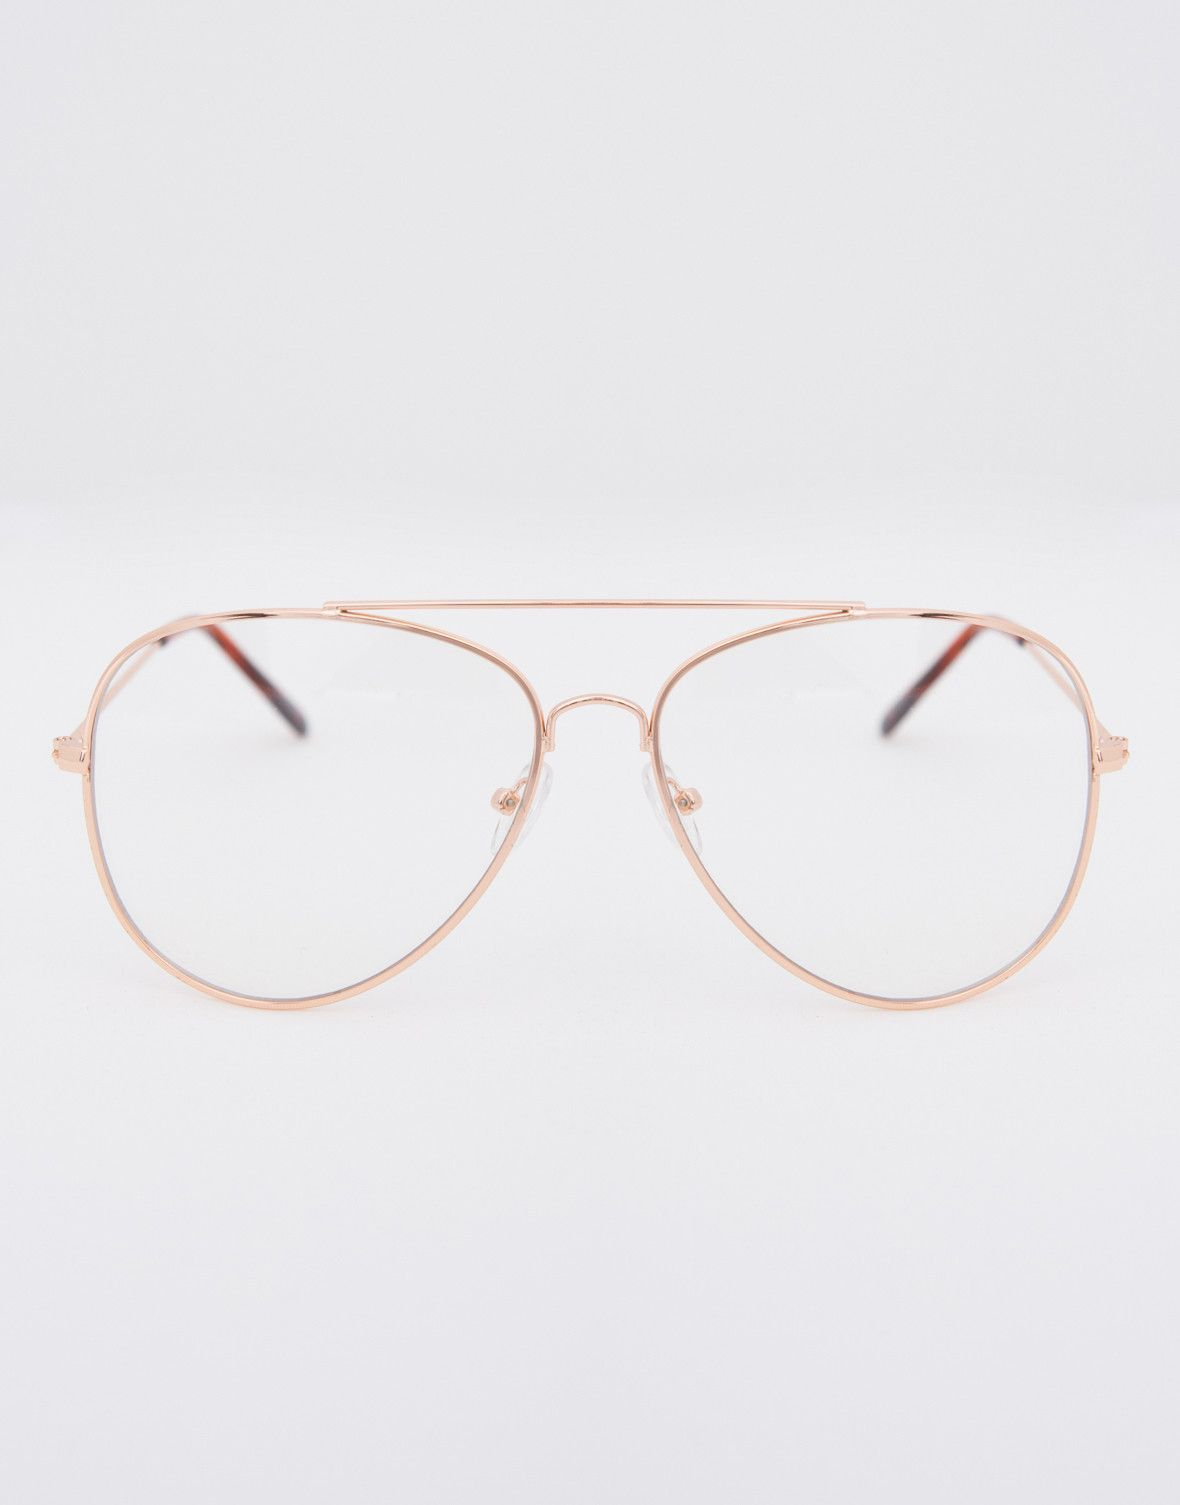 ffa824e3a43 Add a little mystery with these cool Aviator Clear Glasses. Celebs like  Kendall have mastered this trend and we are in love. These glasses come in  multiple ...